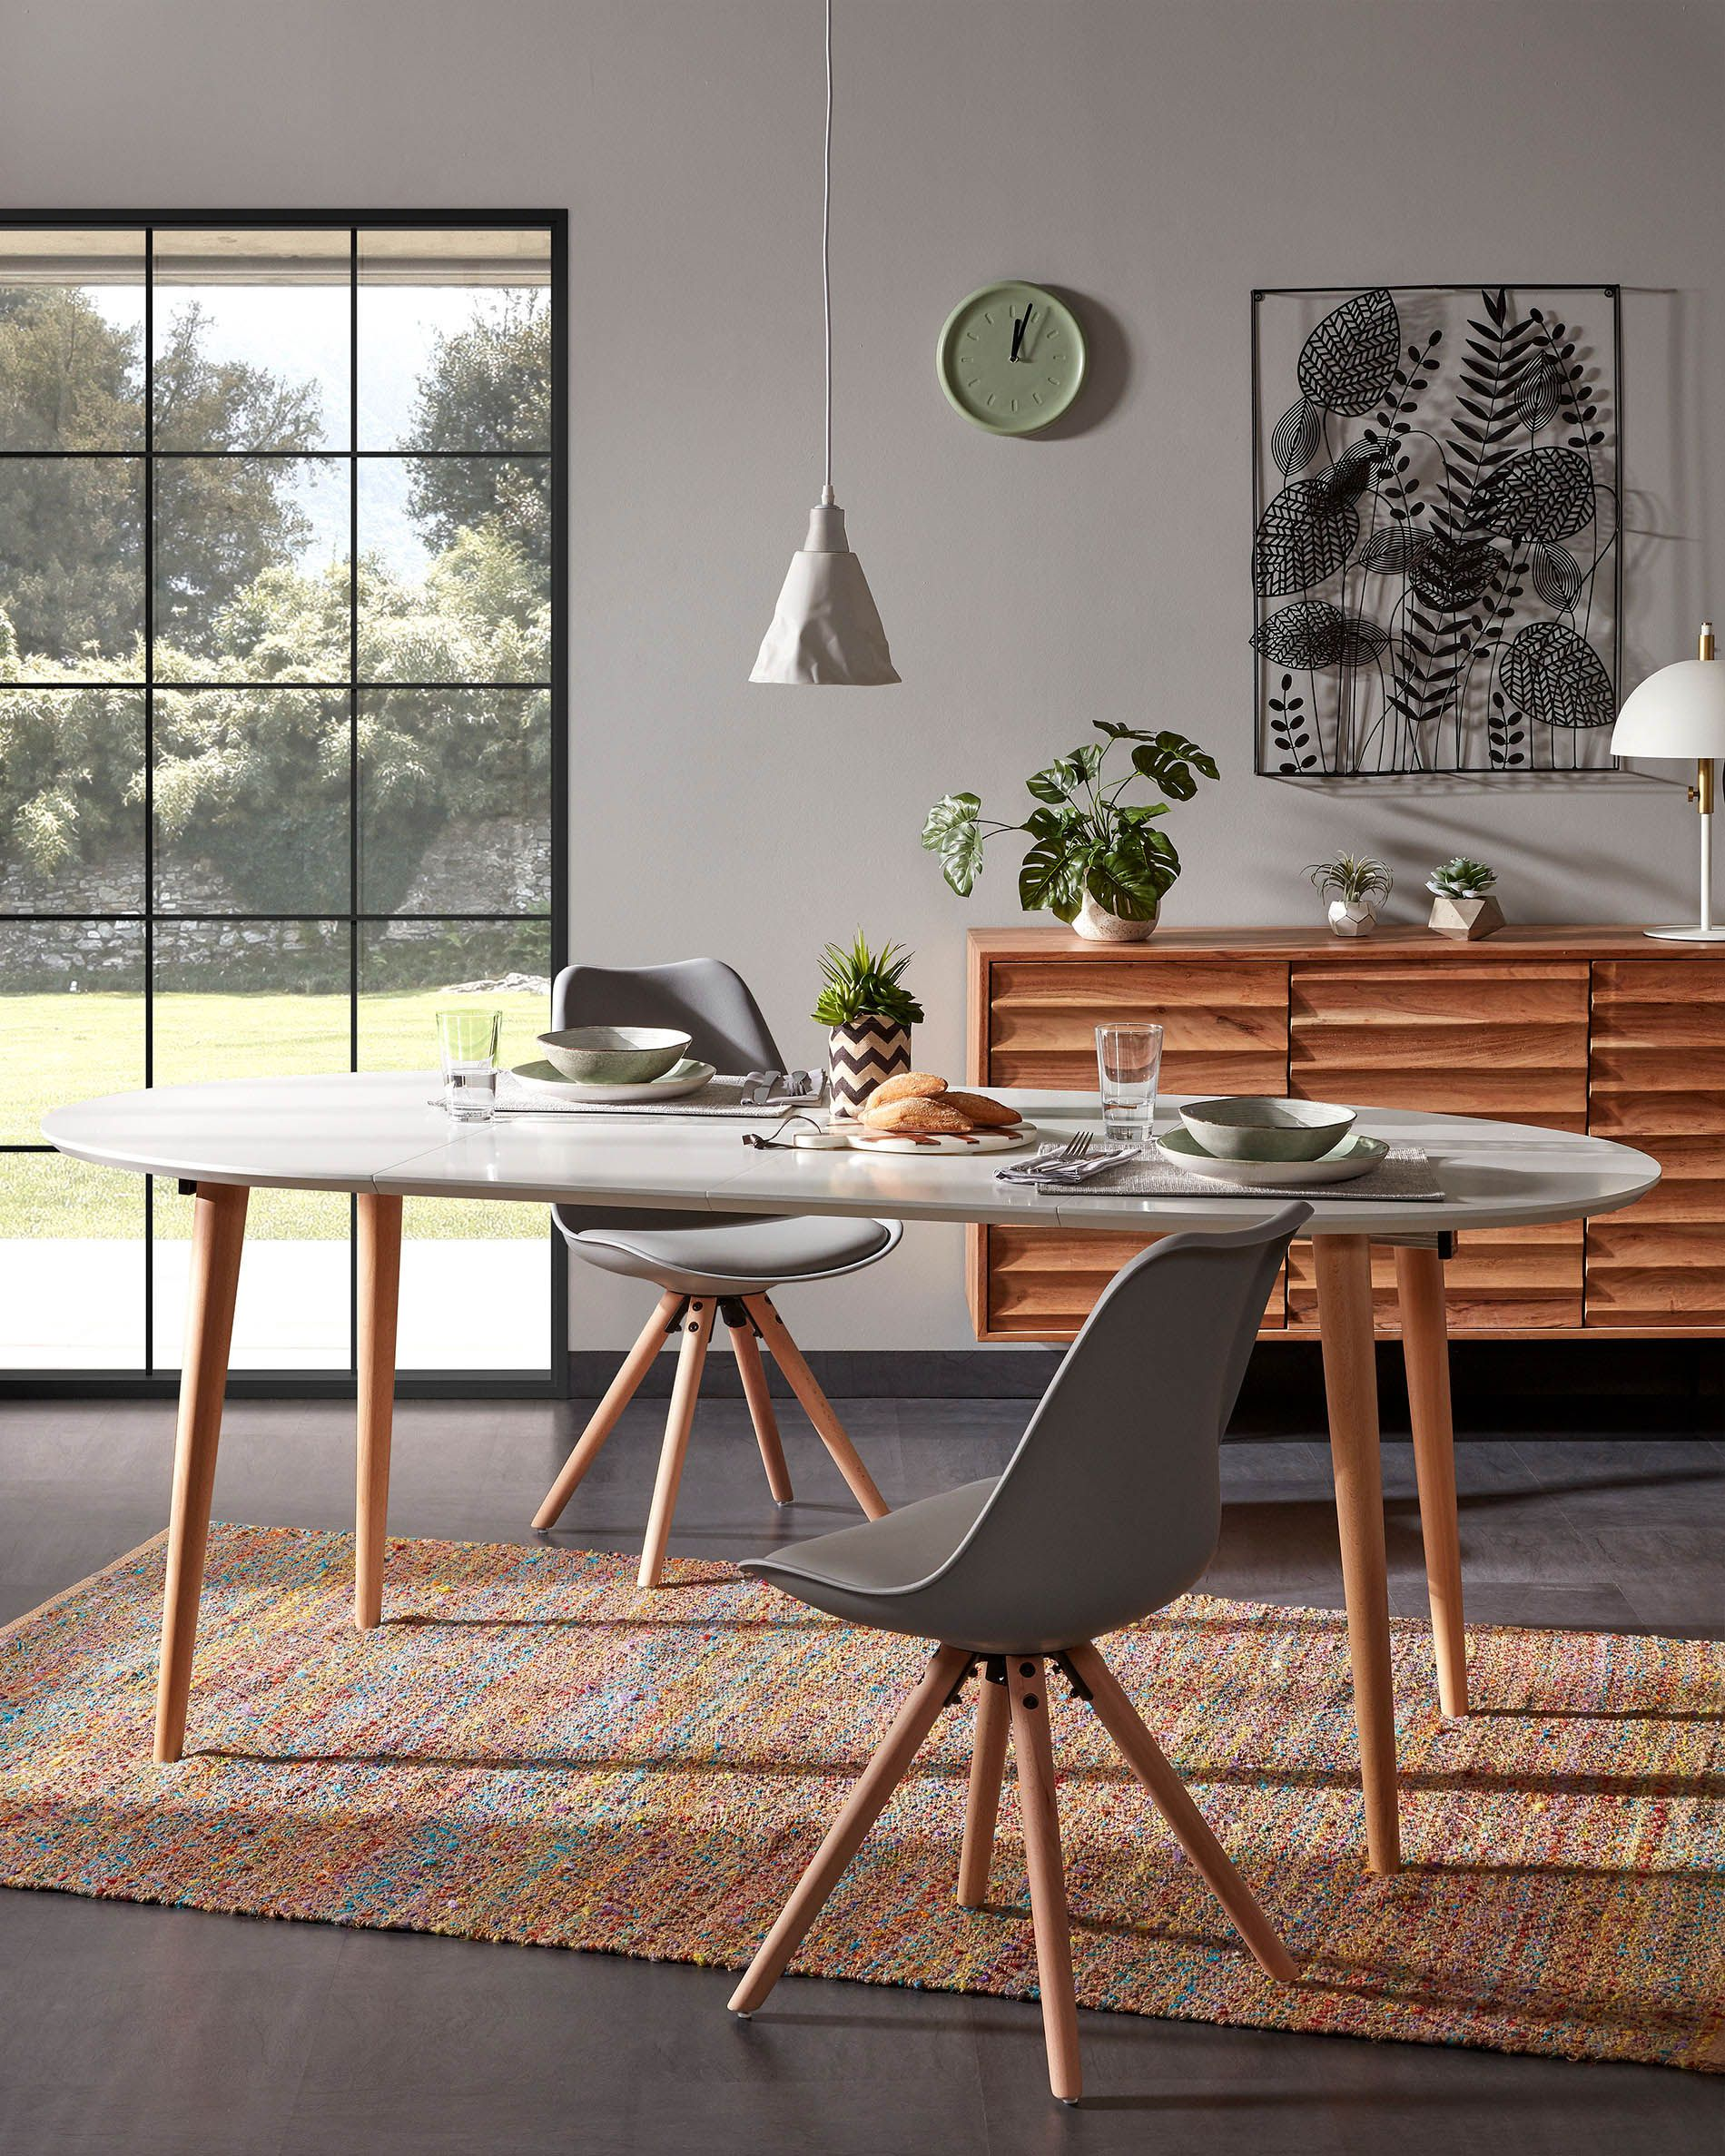 Oqui Extendable Oval Table 140 220 X 90 Cm White Kave Home